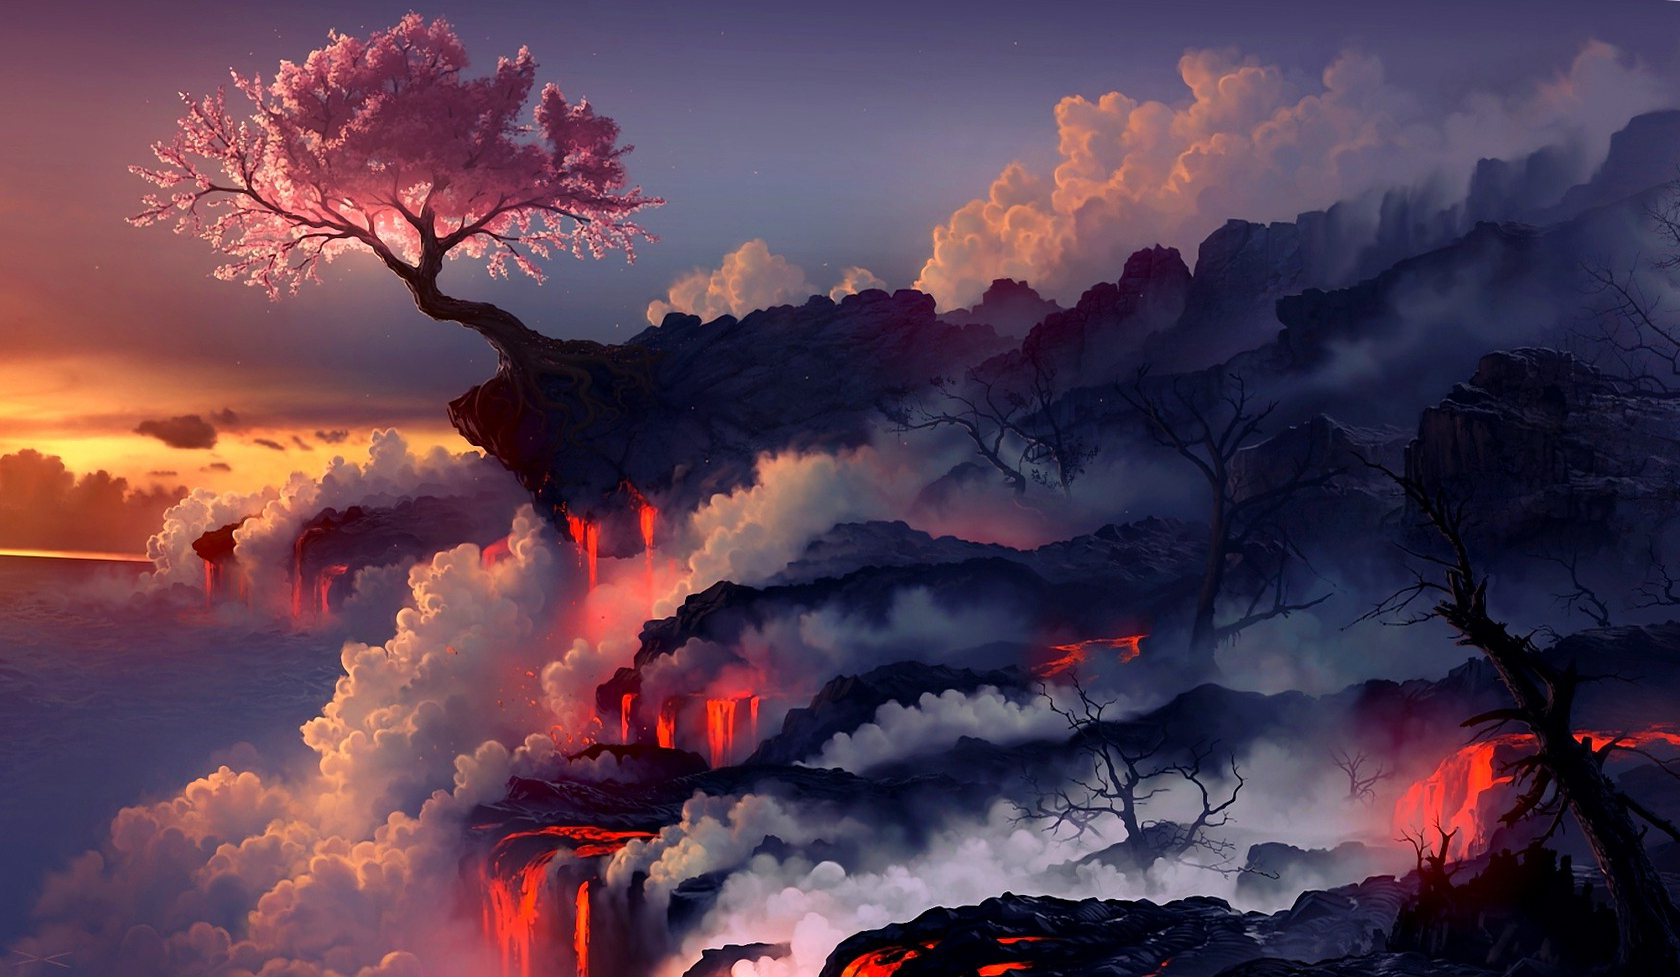 Epic Movie Hd Wallpapers Digital Cherry Tree Landscapes Wallpapers Hd Desktop And